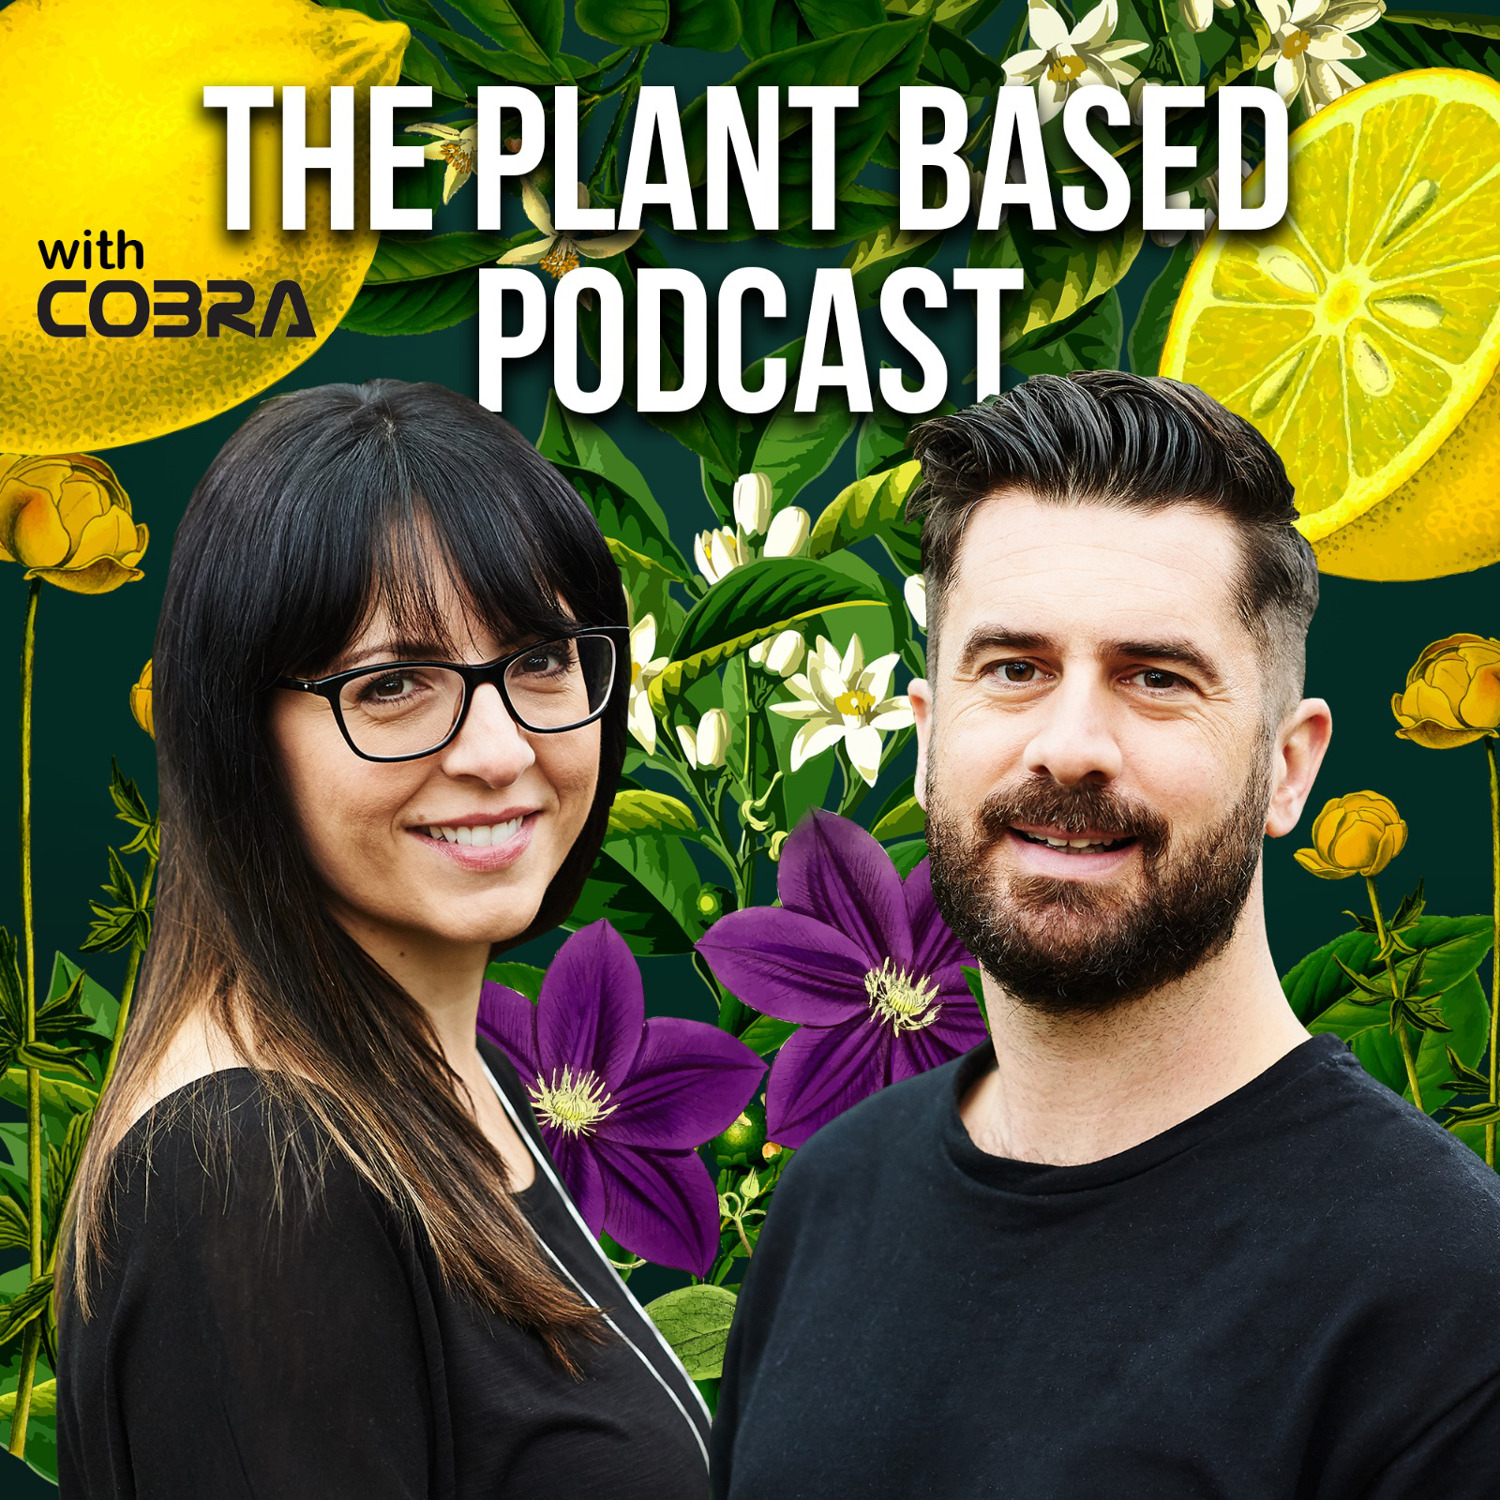 The Plant Based Podcast - Plant Geeks Special: All about Sweet Peas